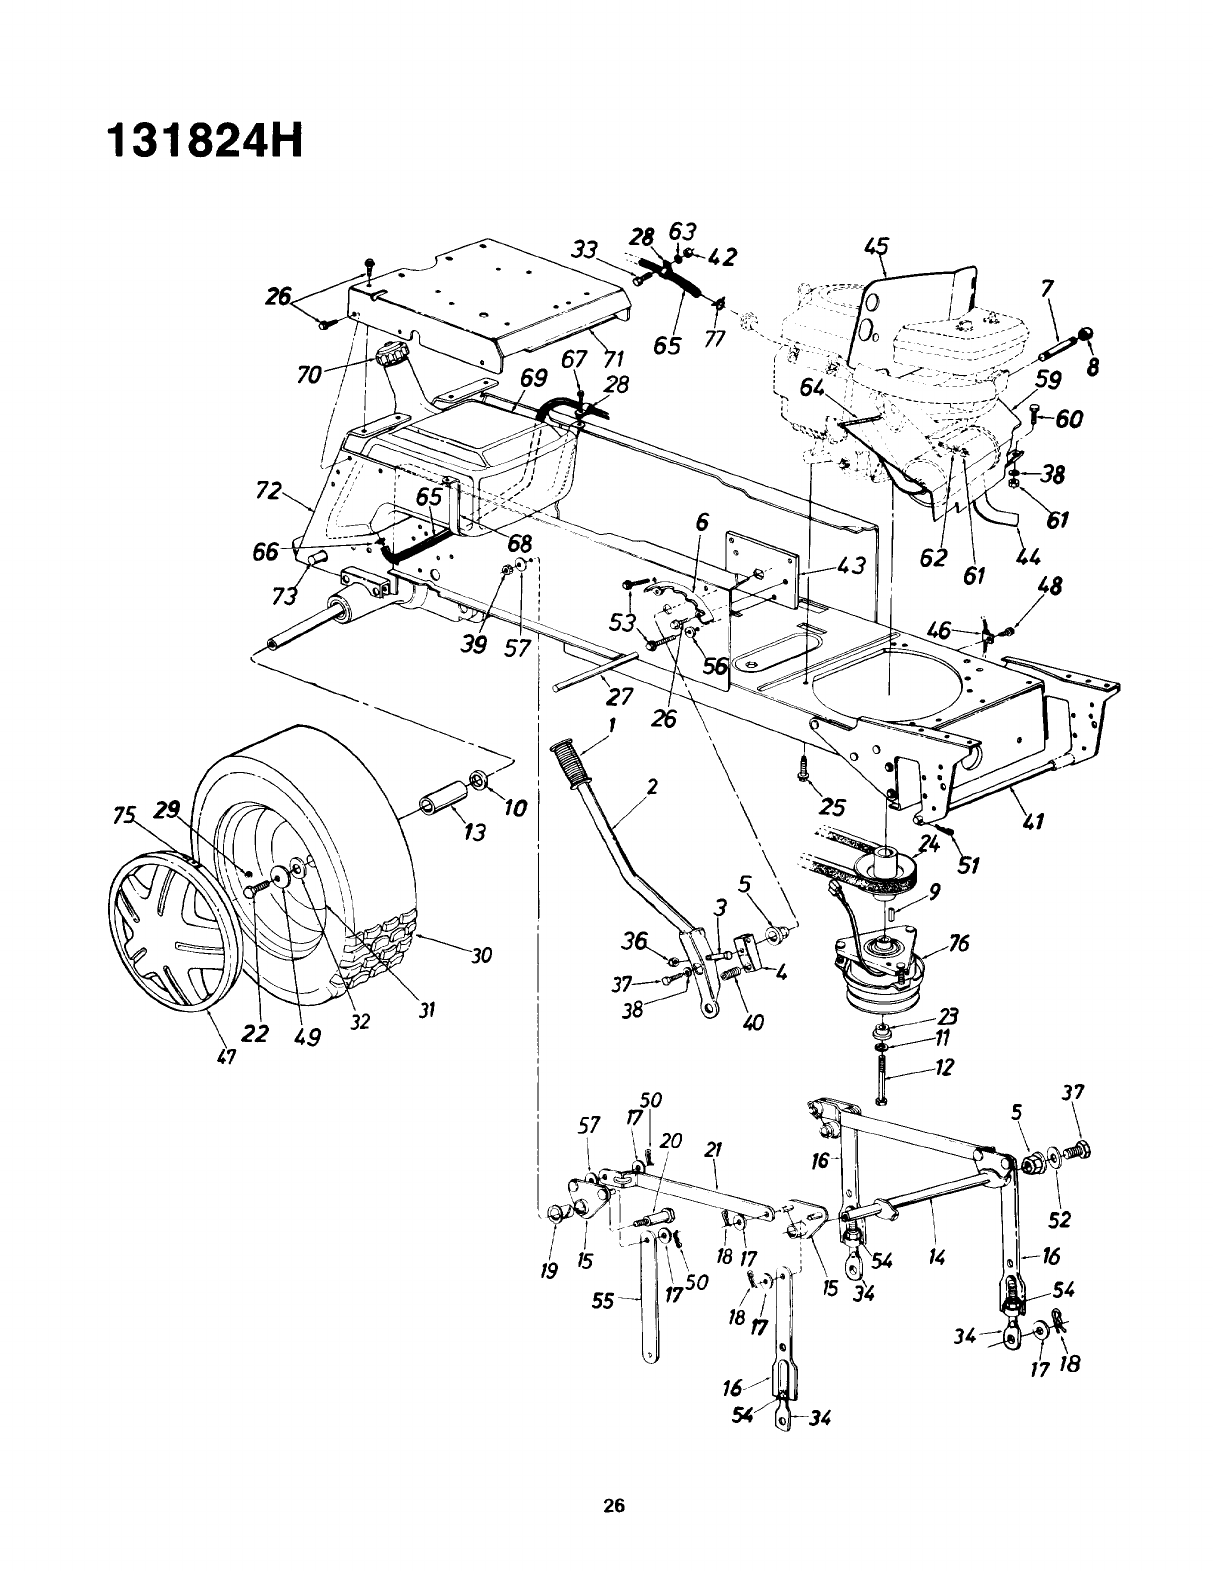 Page 26 of Yard-Man Lawn Mower 131824H User Guide